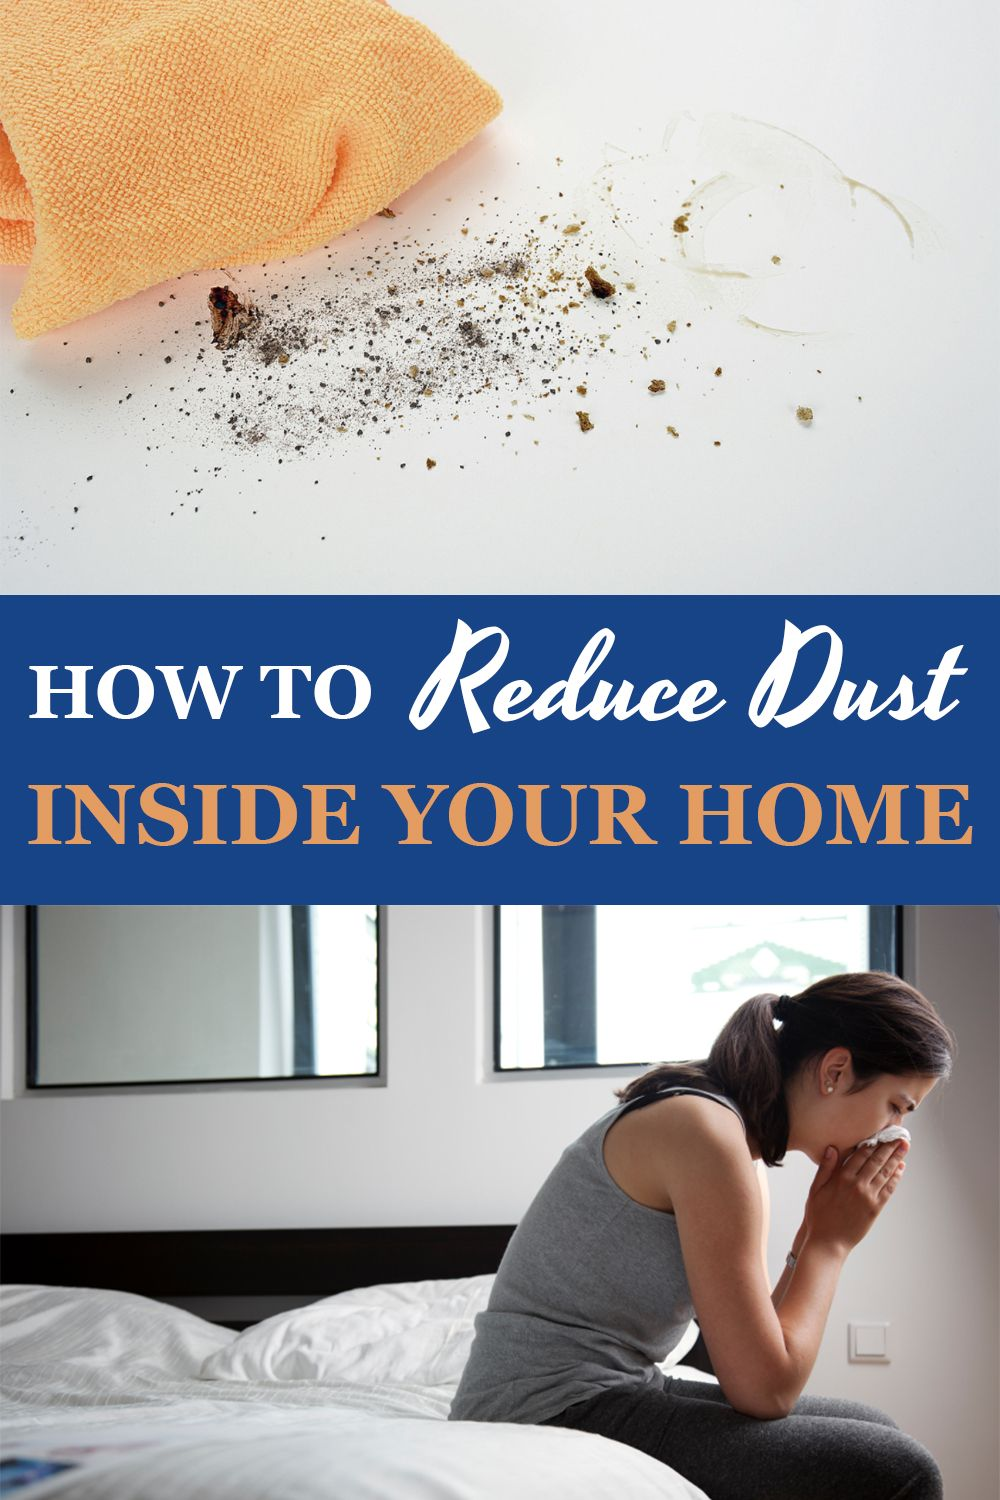 Tired of constantly dusting in your home? Sick of summer